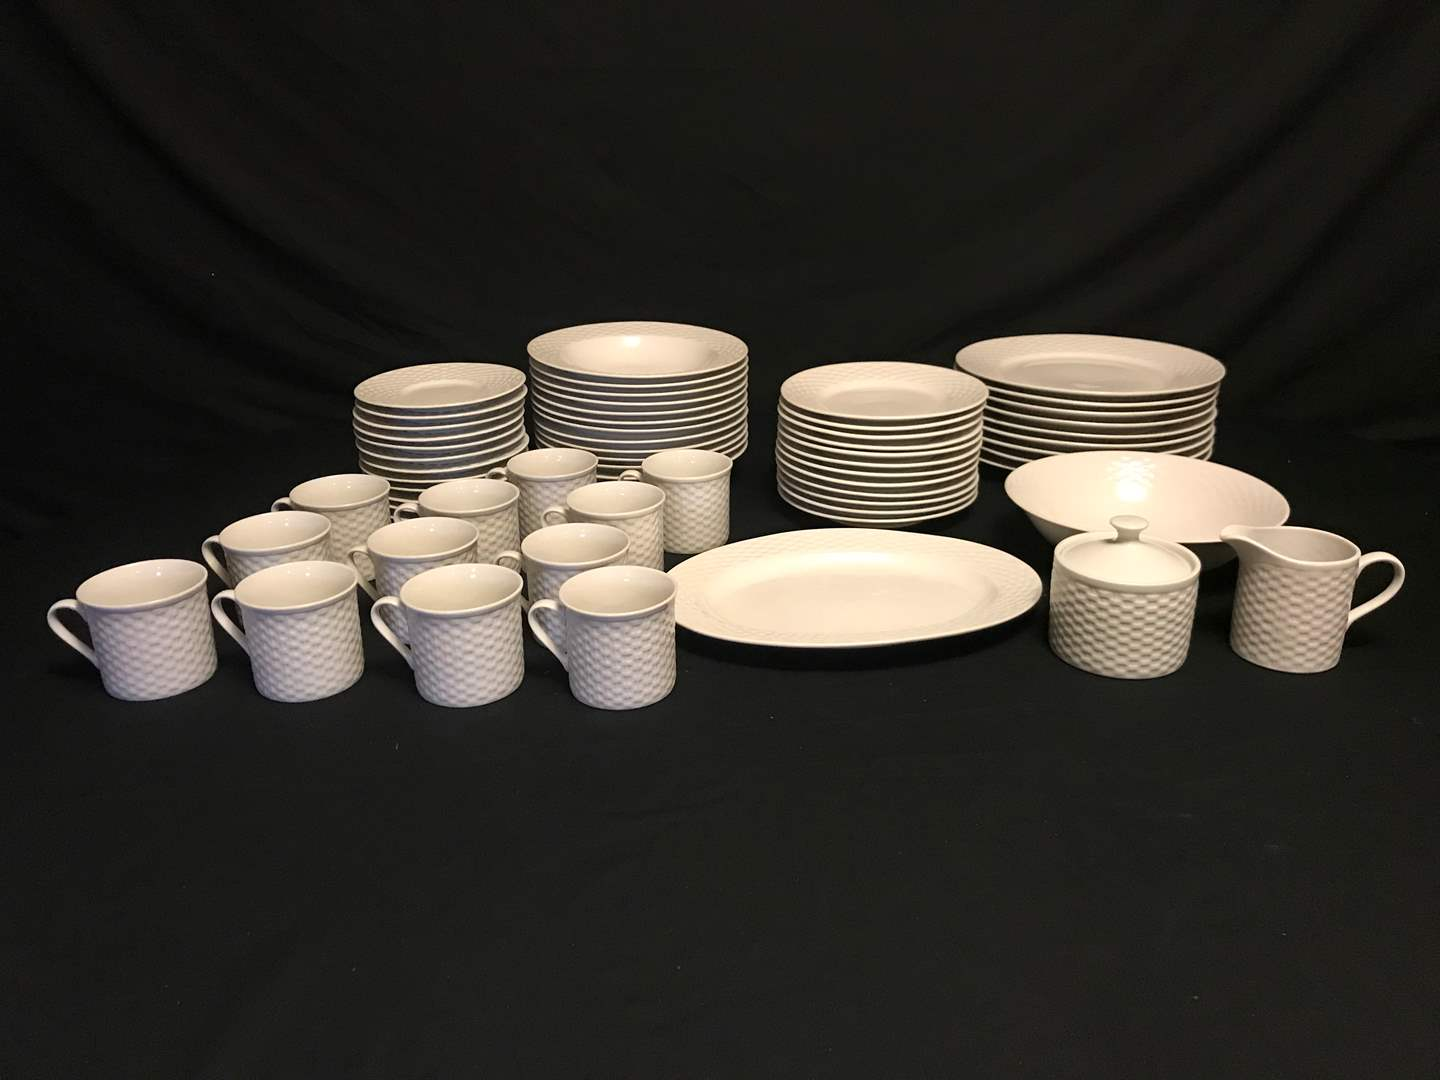 """Lot # 55 - 62 Piece Set of JCPenny """"Home Collection"""" Dinnerware  (main image)"""